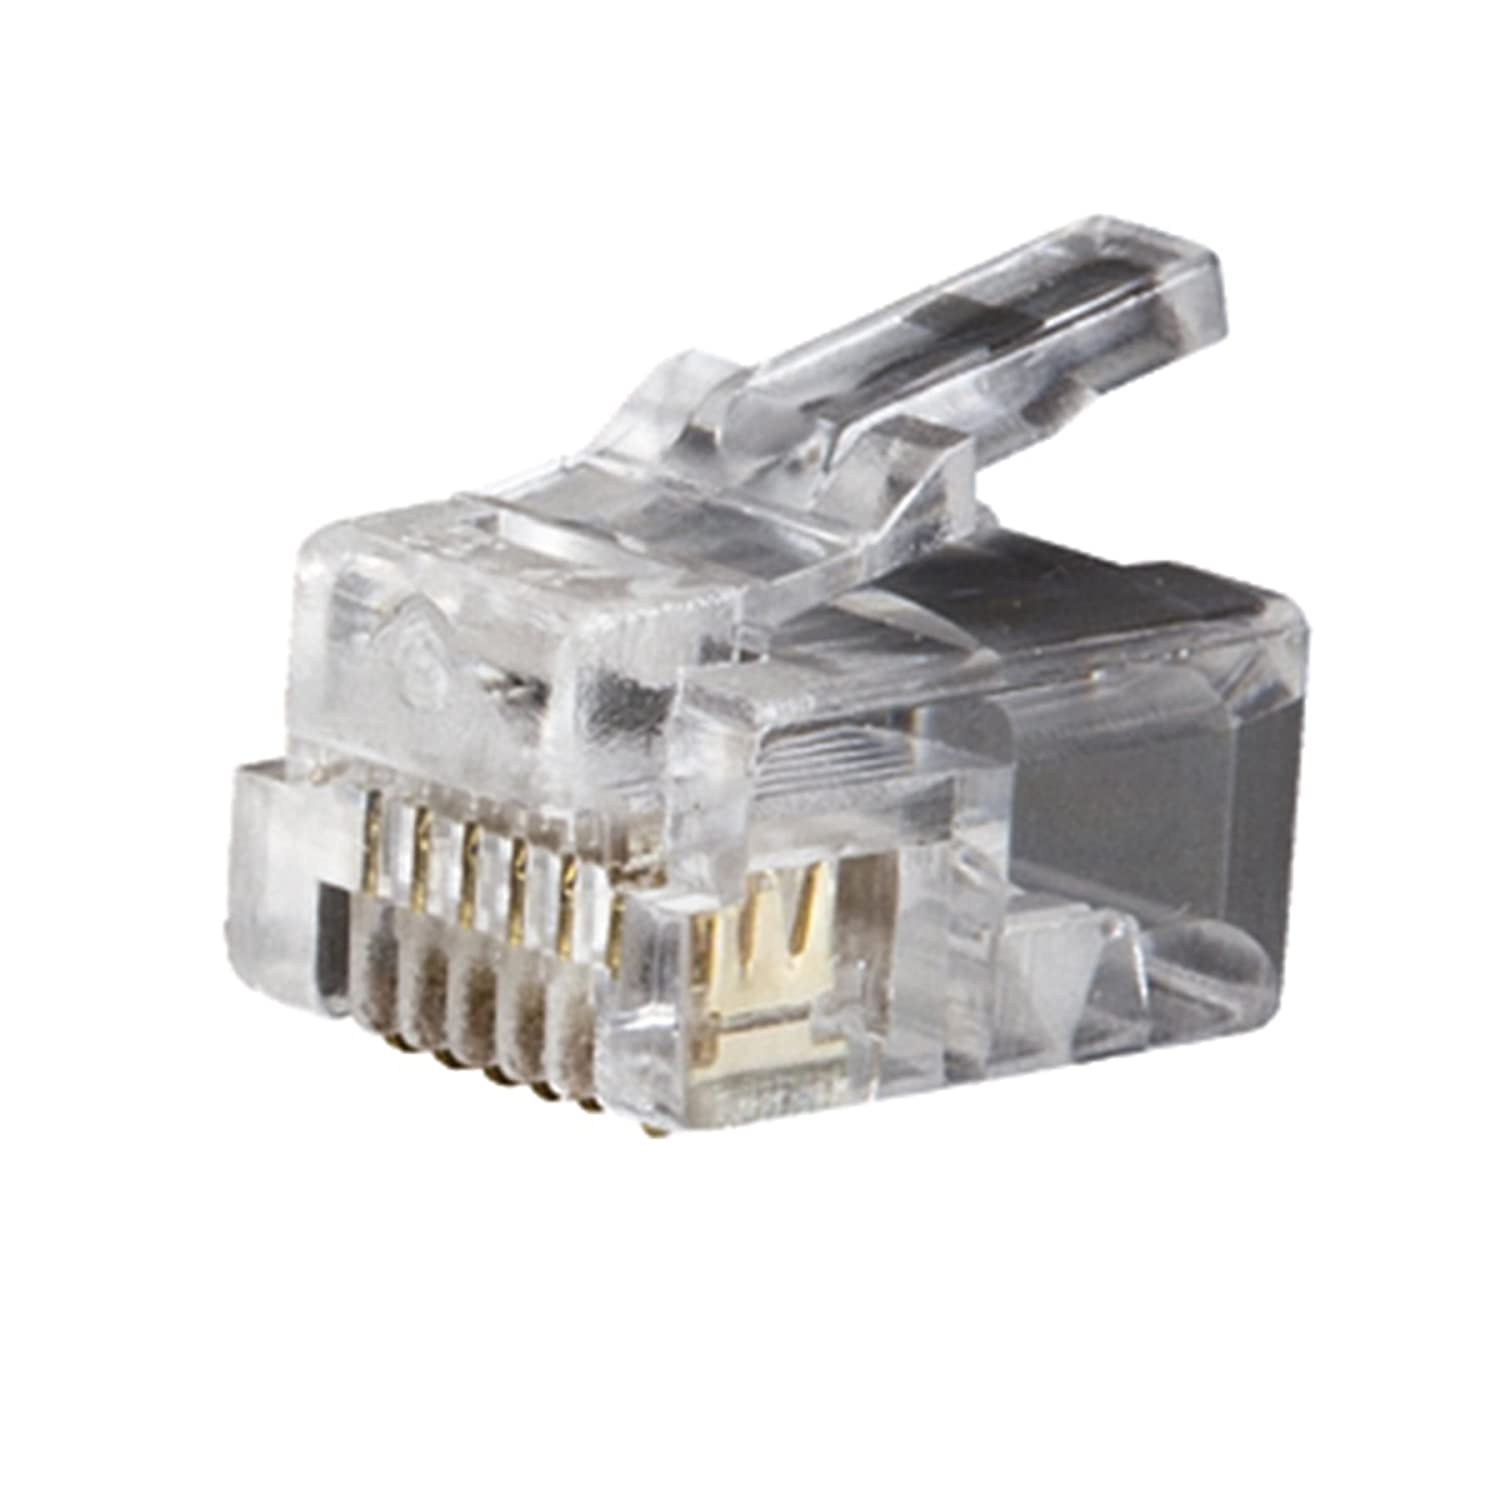 Telephone Plug RJ11 6P4C 25-Pack Klein Tools VDV826-601 - Crimpers - Amazon.com